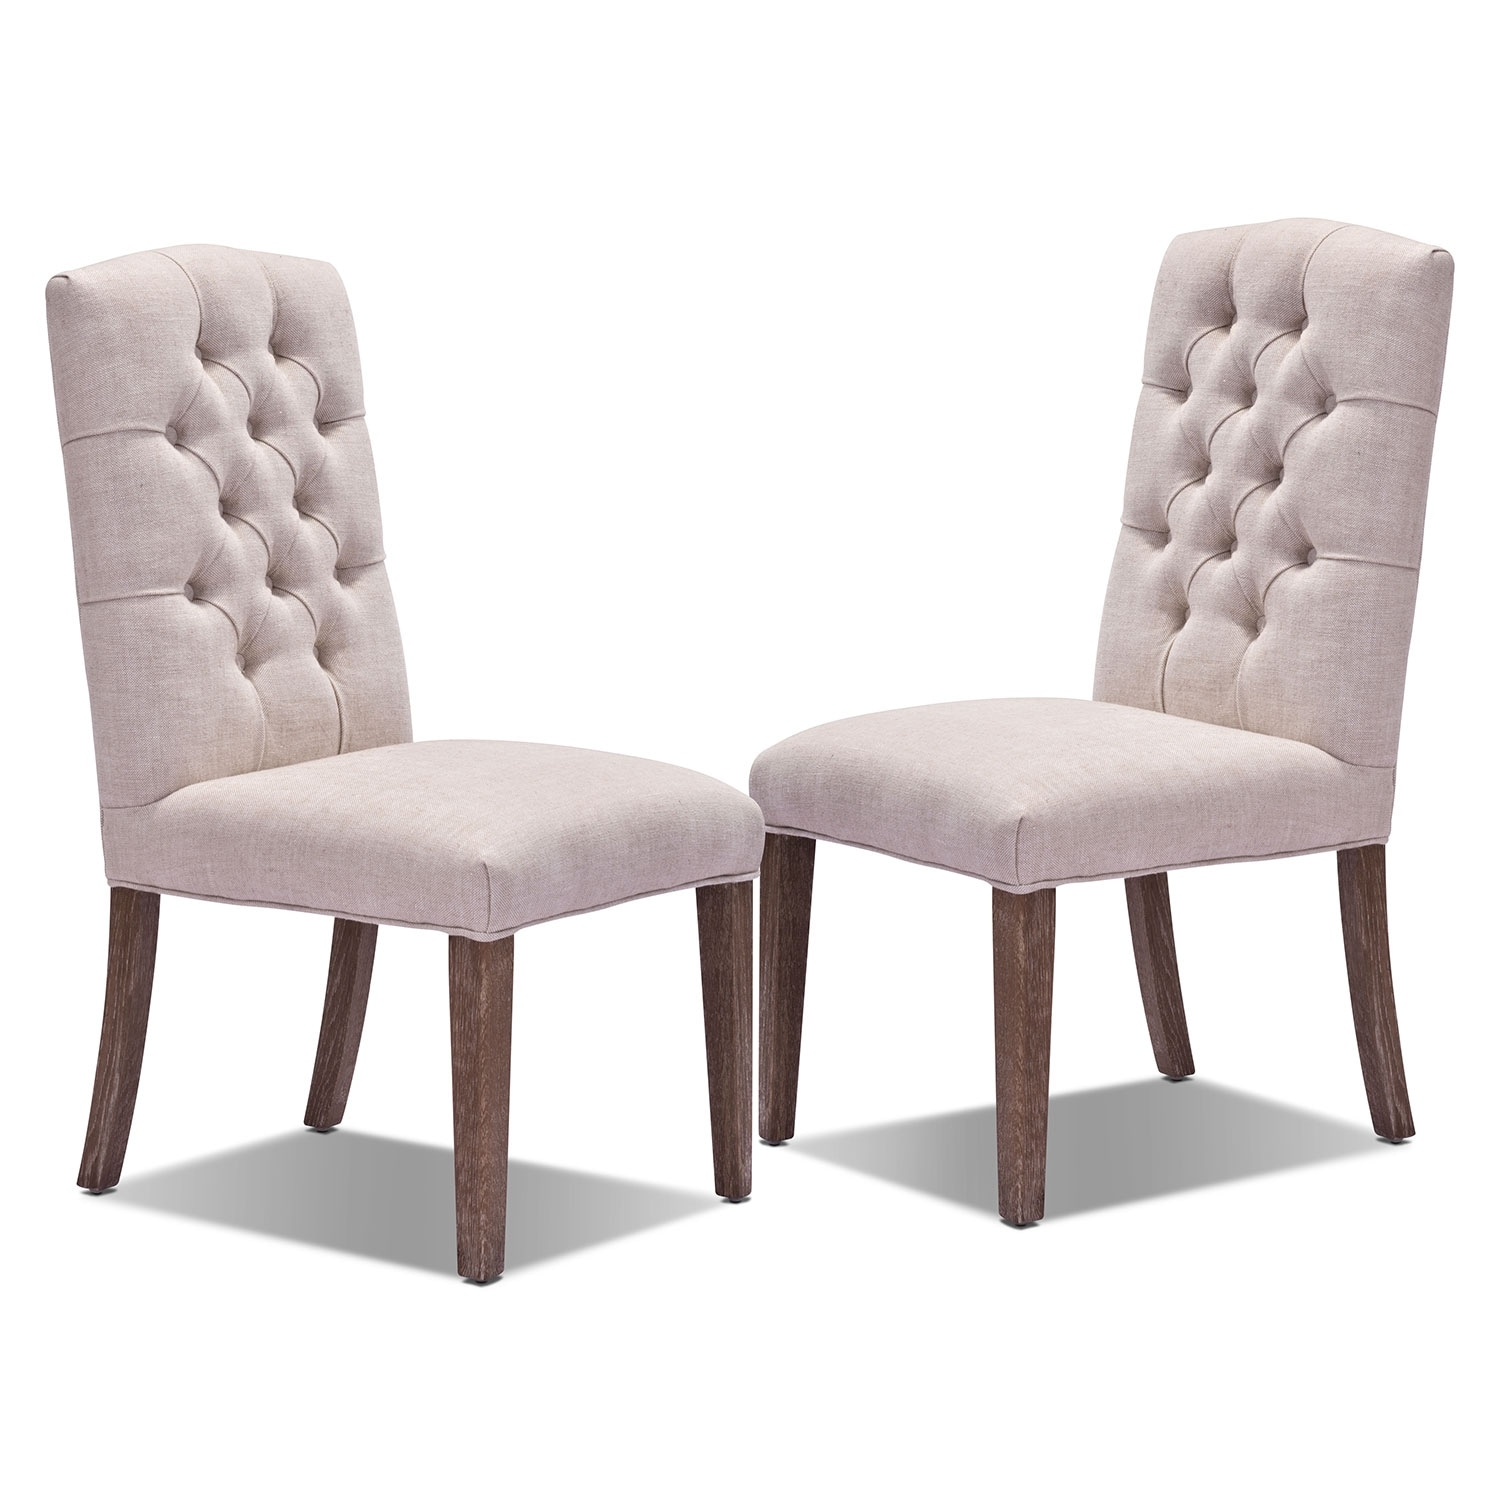 Accent and Occasional Furniture - Dakota 2-Pack Chairs - Light Beige